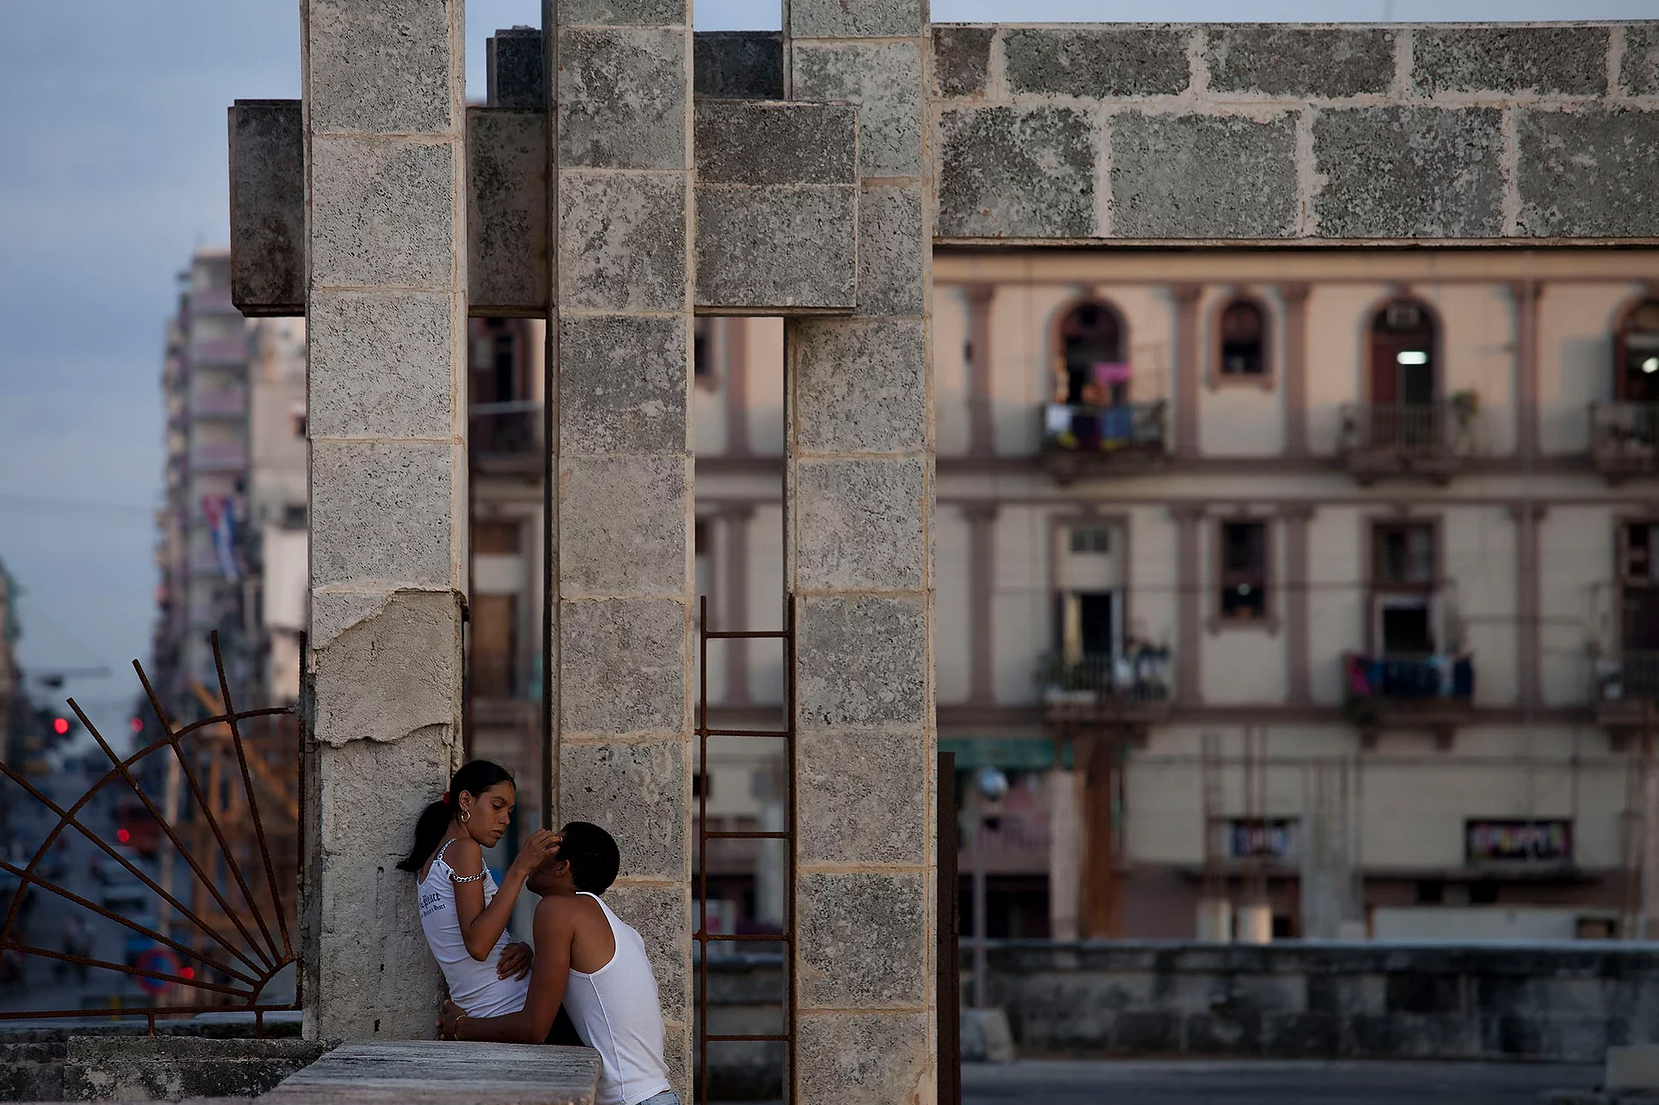 Color photo by Alex Almeida, young couple Cuba.